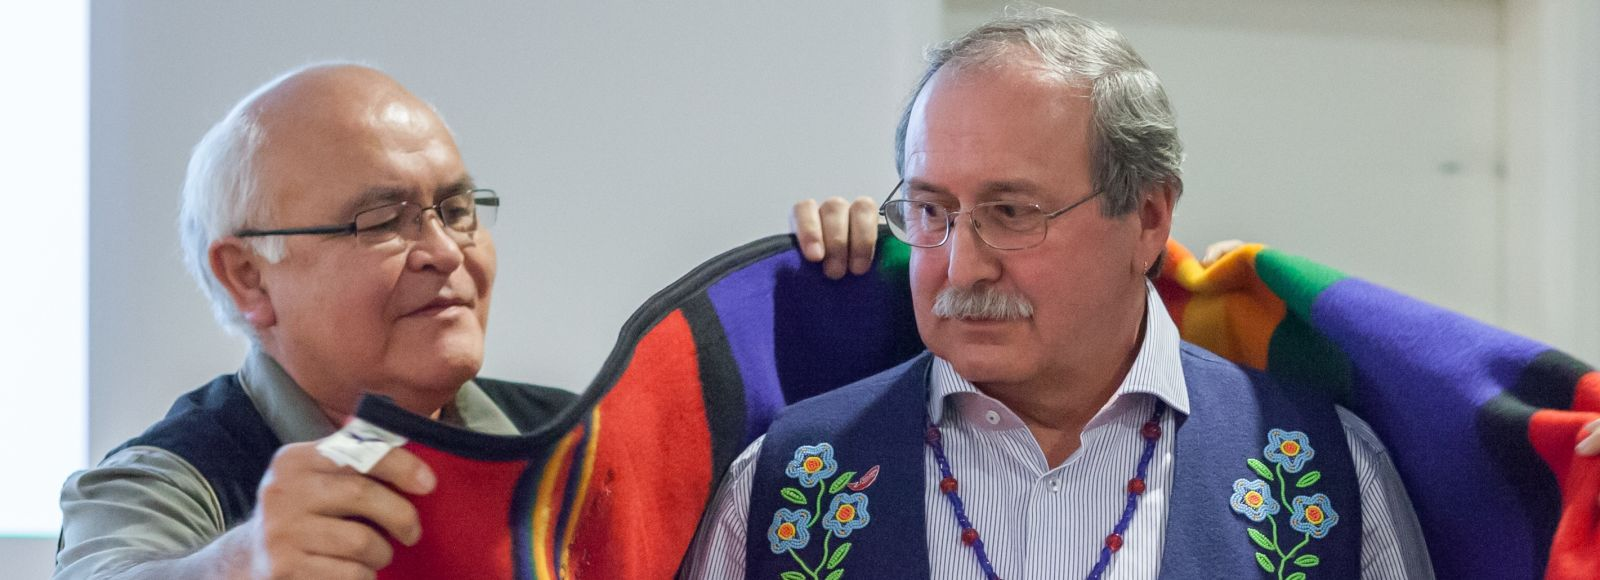 A blanket is draped on the shoulders of indigenous leader Art Sterritt